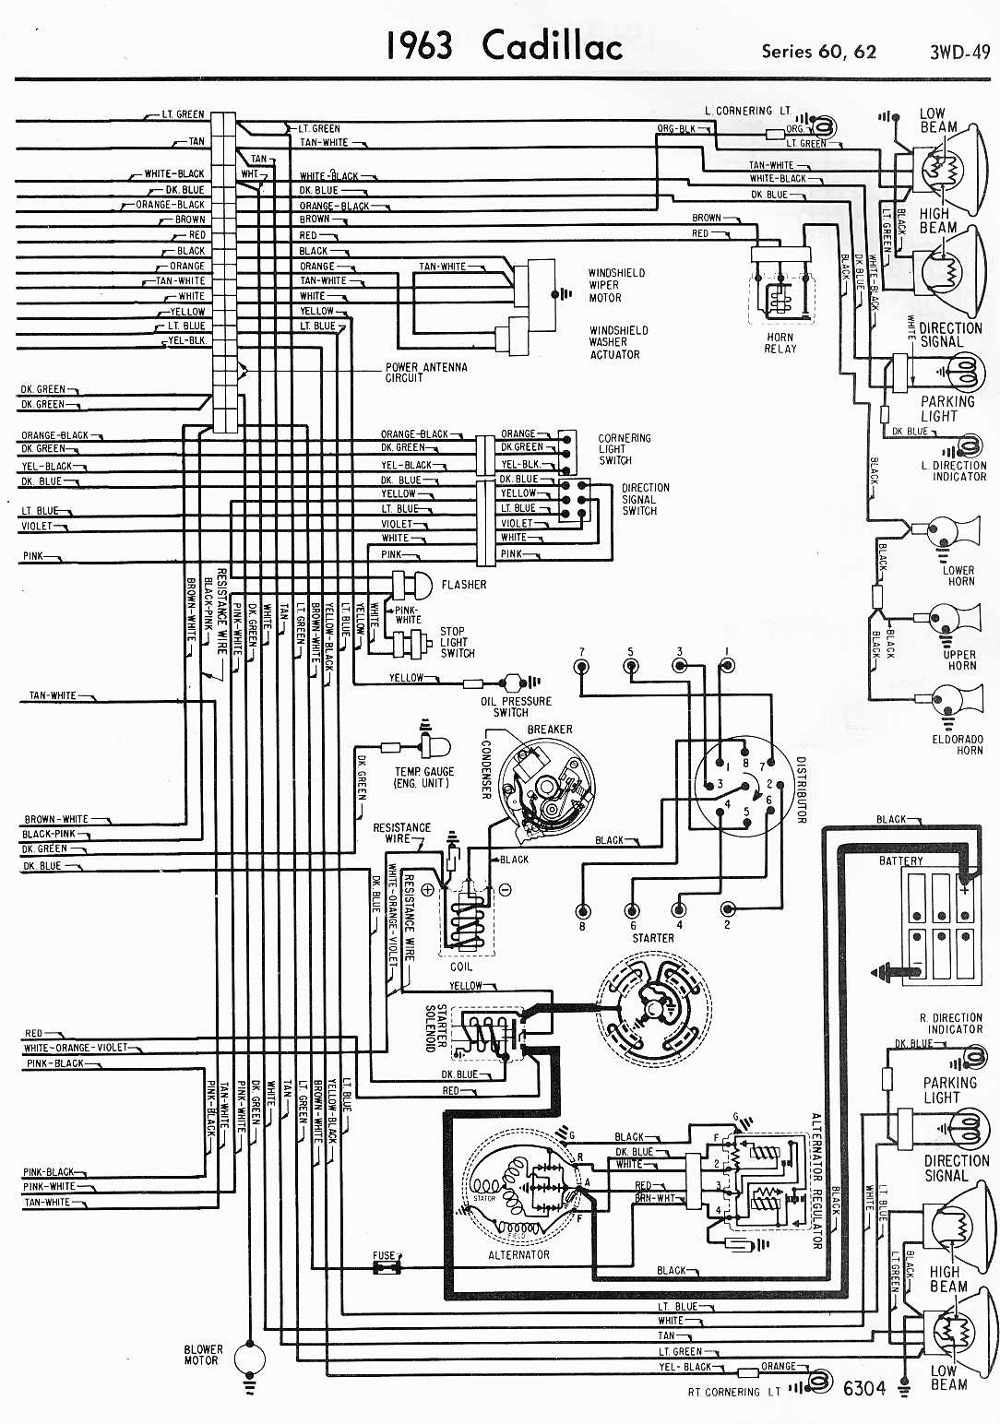 Cadillac Wiring Diagrams : Cadillac radio diagram get free image about